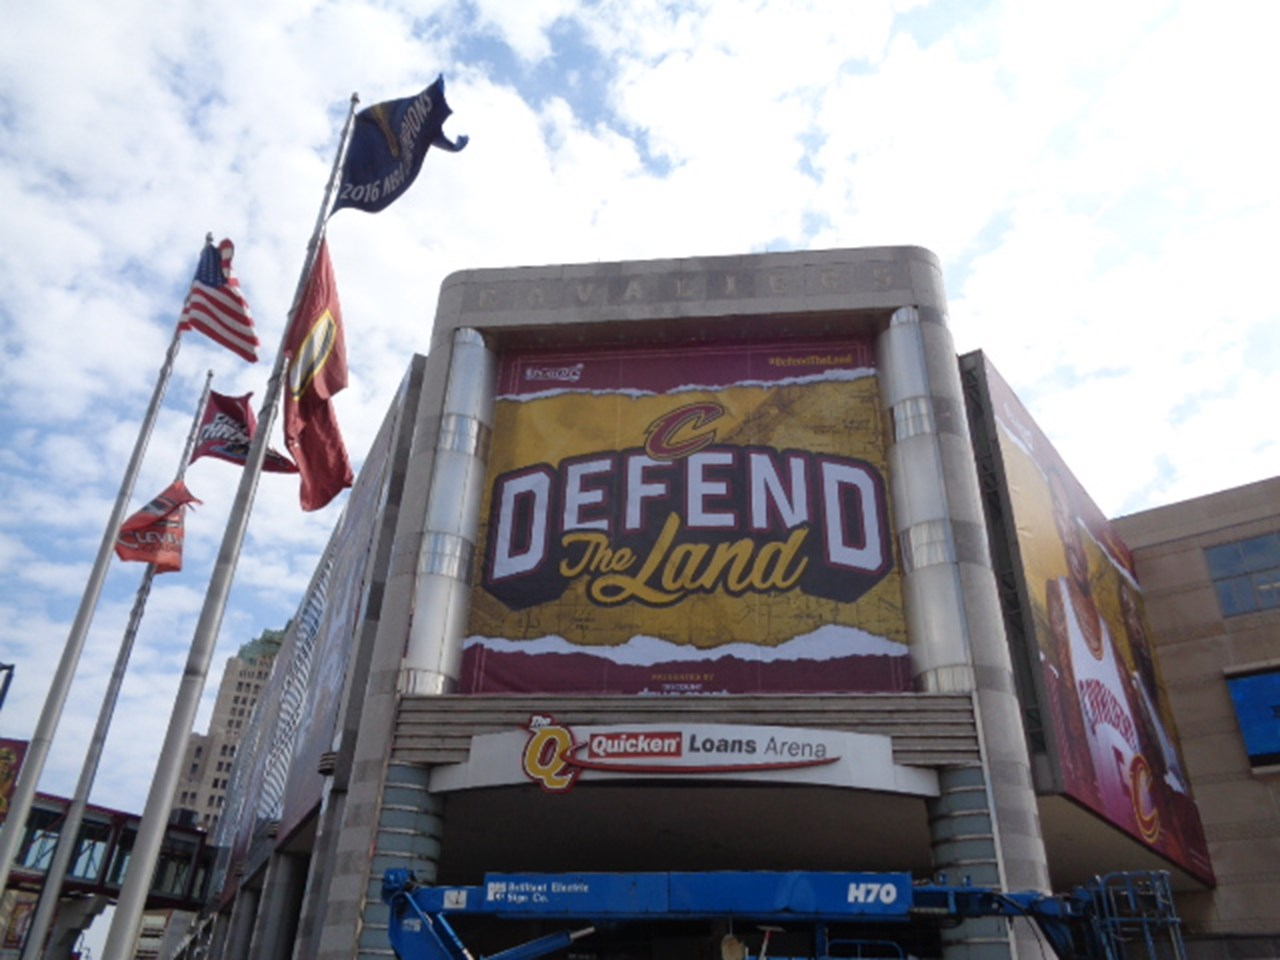 Sports- Facility- The Q Arena- Defend The Land